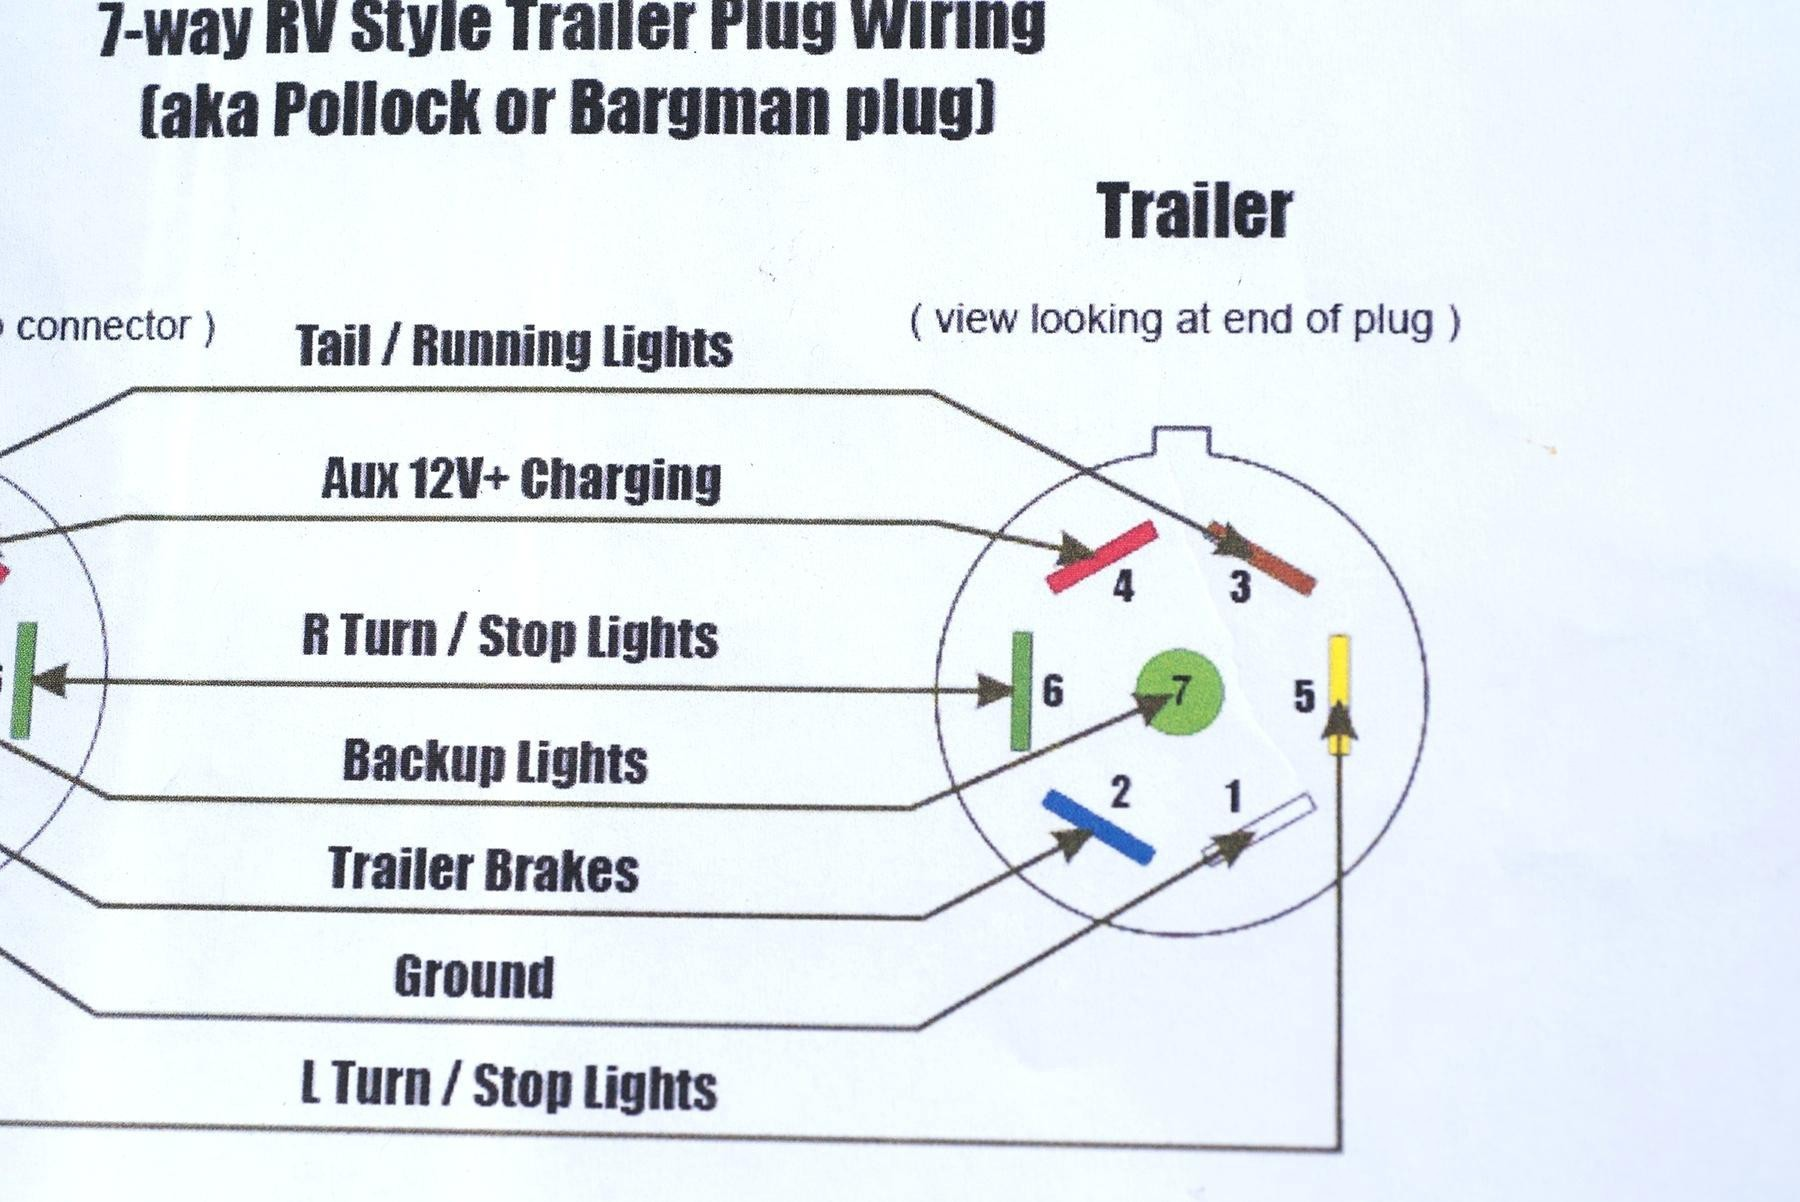 socket chevy 2500 trailer wiring diagram - wiring diagram lush-warehouse -  lush-warehouse.pmov2019.it  pmov2019.it